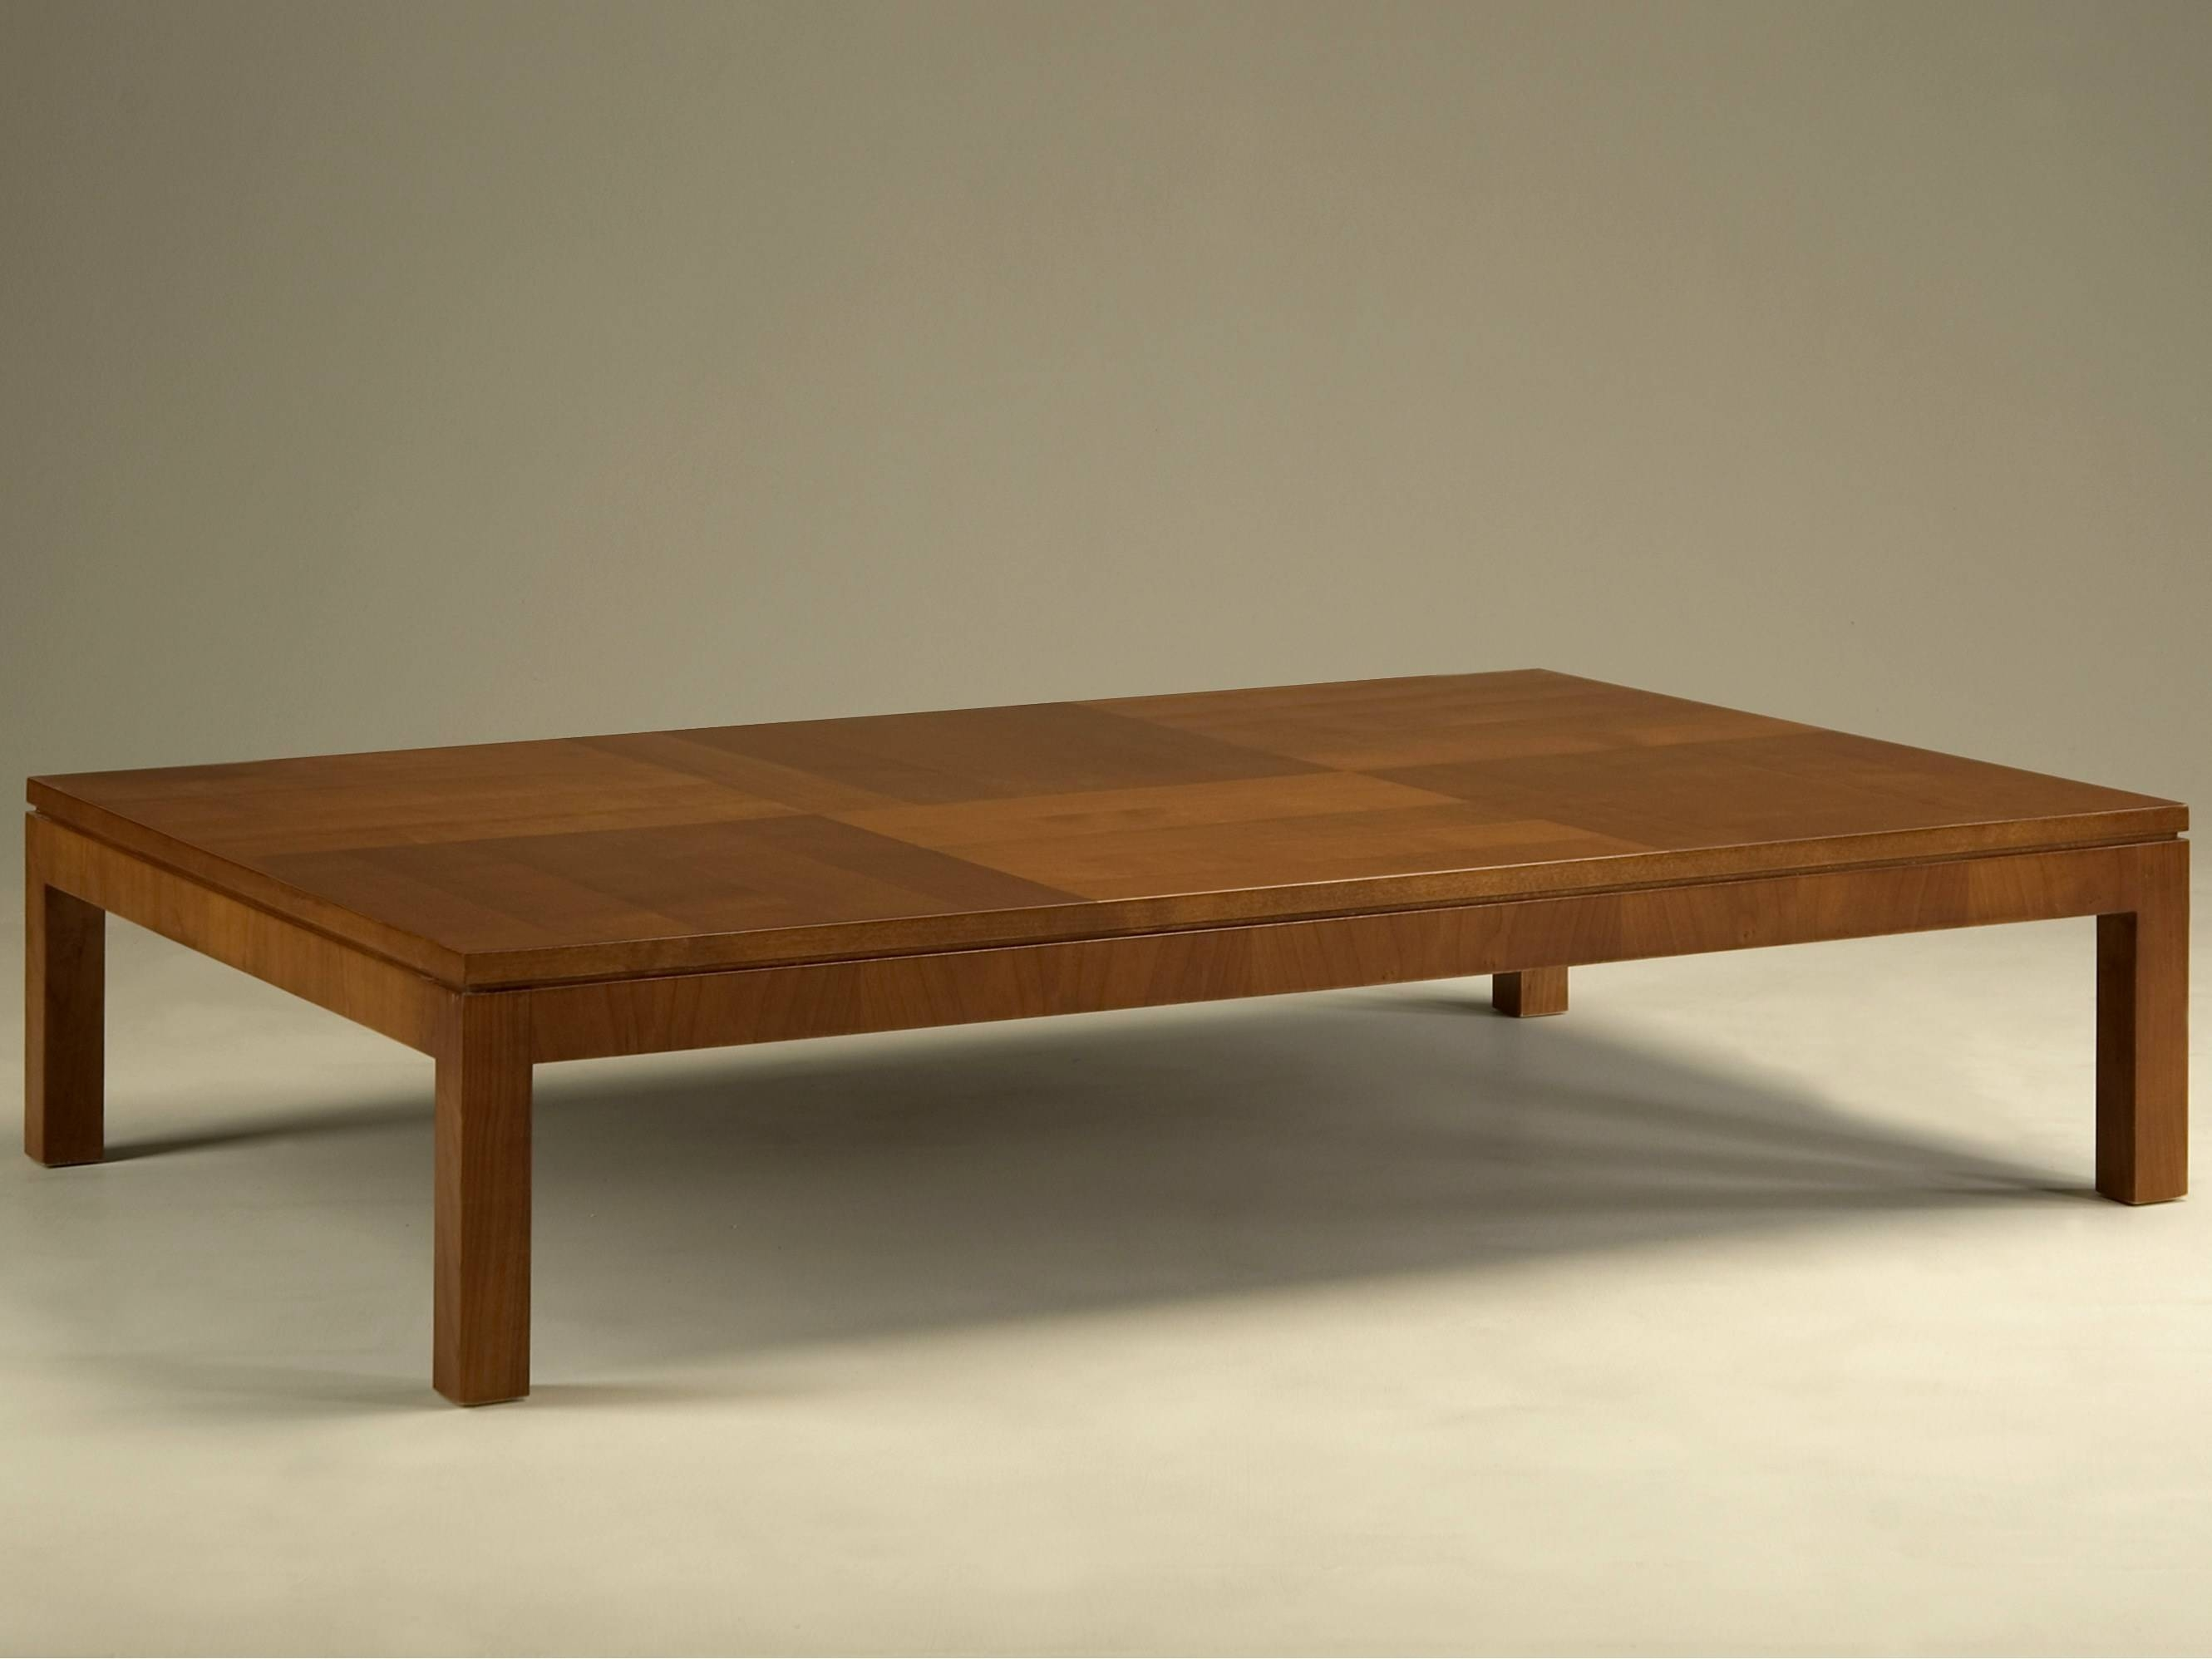 Low Wooden Coffee Table | Exterior Decorations Ideas inside Low Wood Coffee Tables (Image 12 of 15)